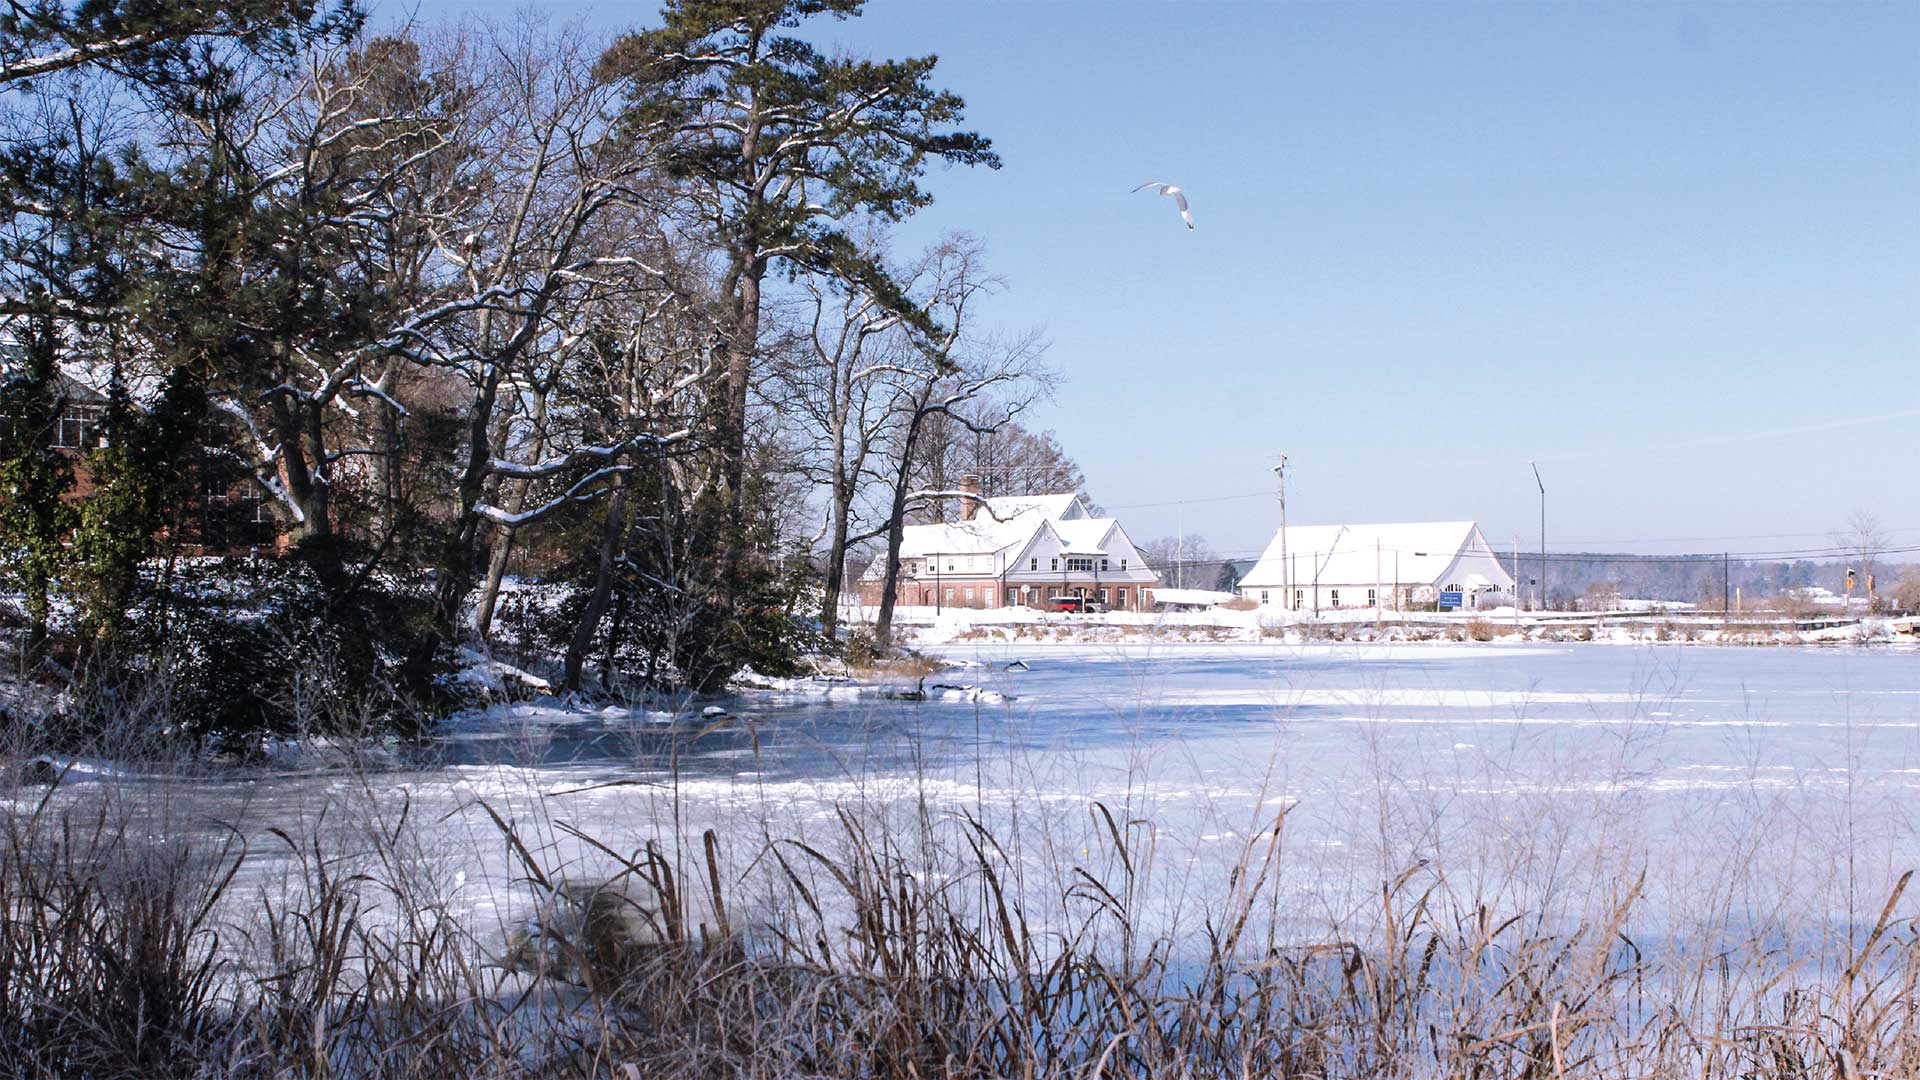 snowy campus view over the St. James pond